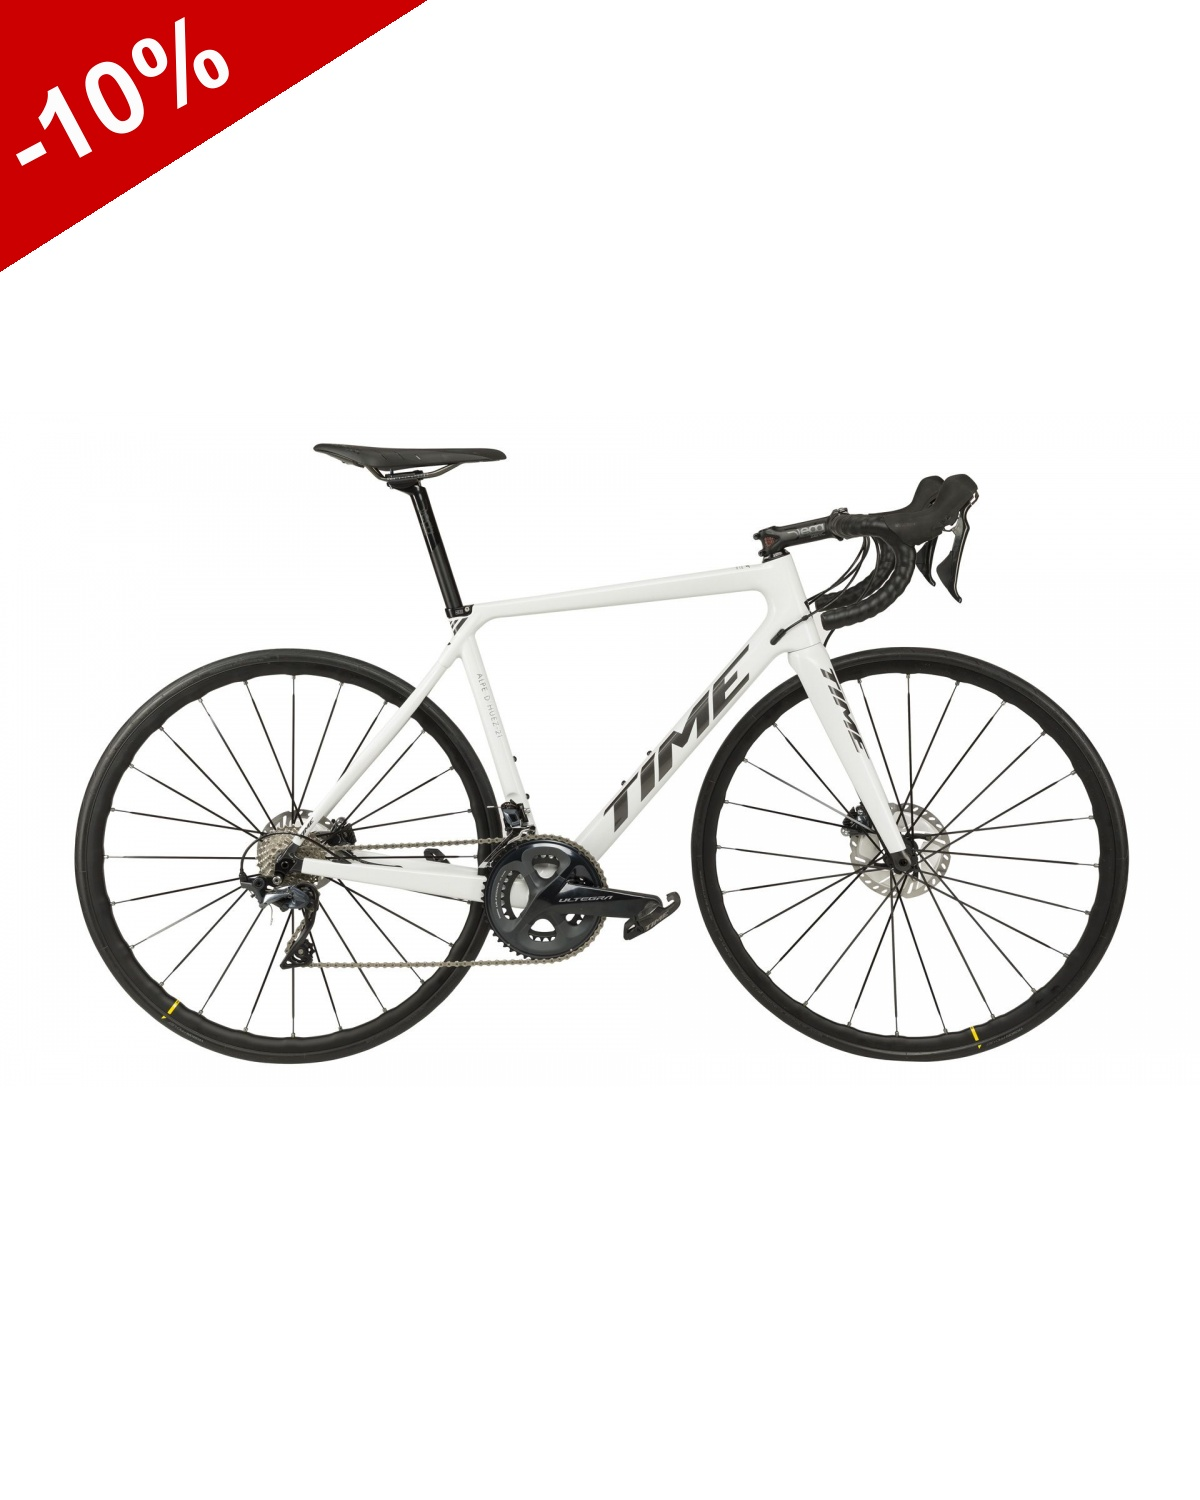 TIME ALPE D'HUEZ 21 DISC SRAM RED AXS - Blanc